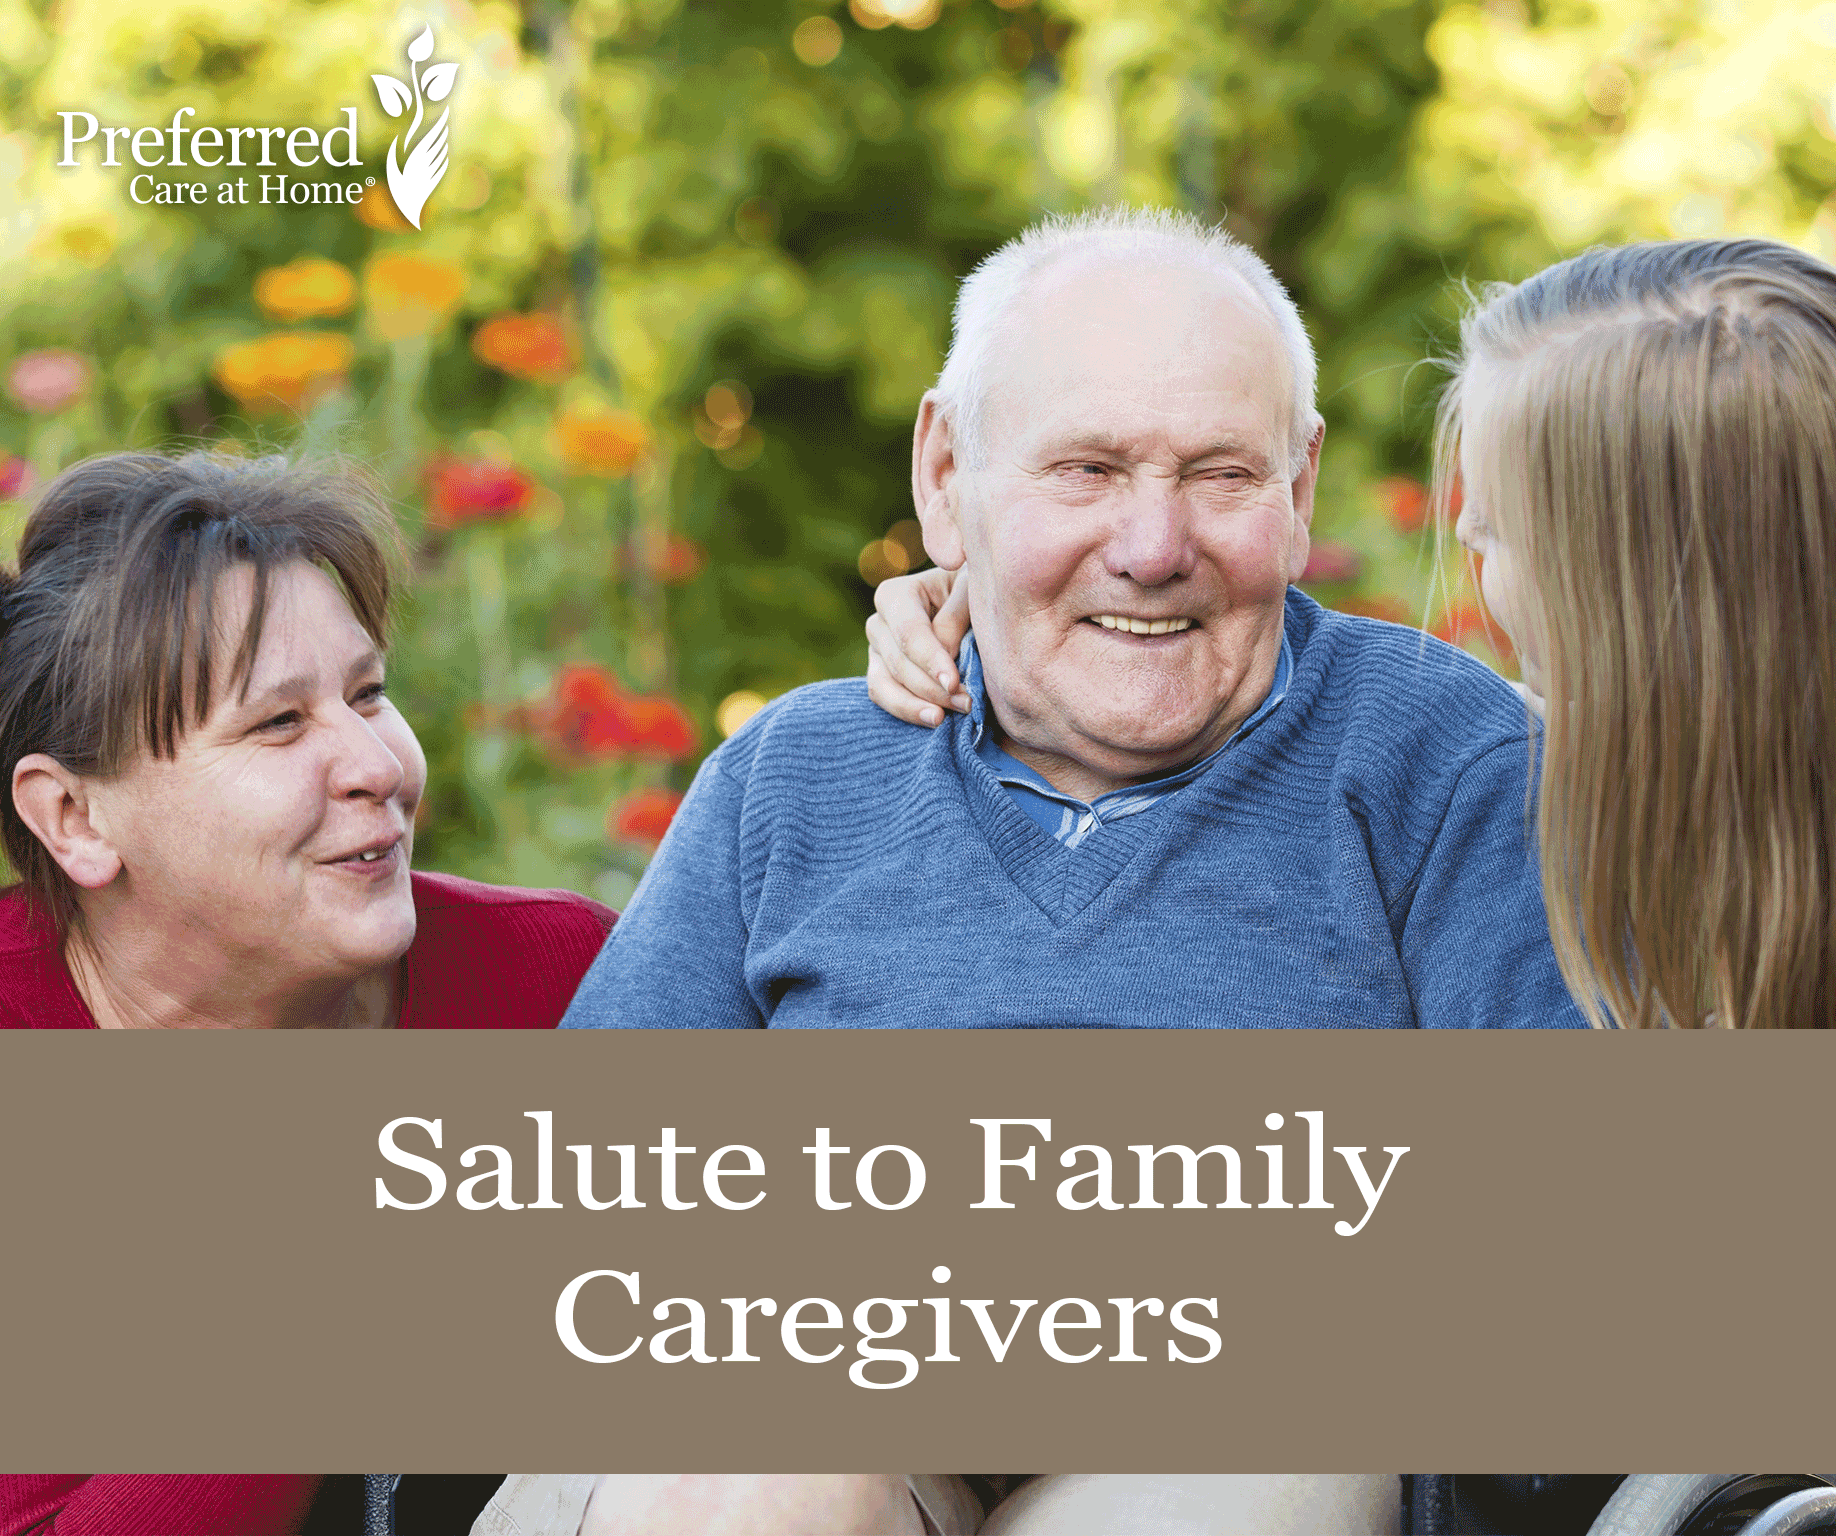 Salute to Family Caregivers